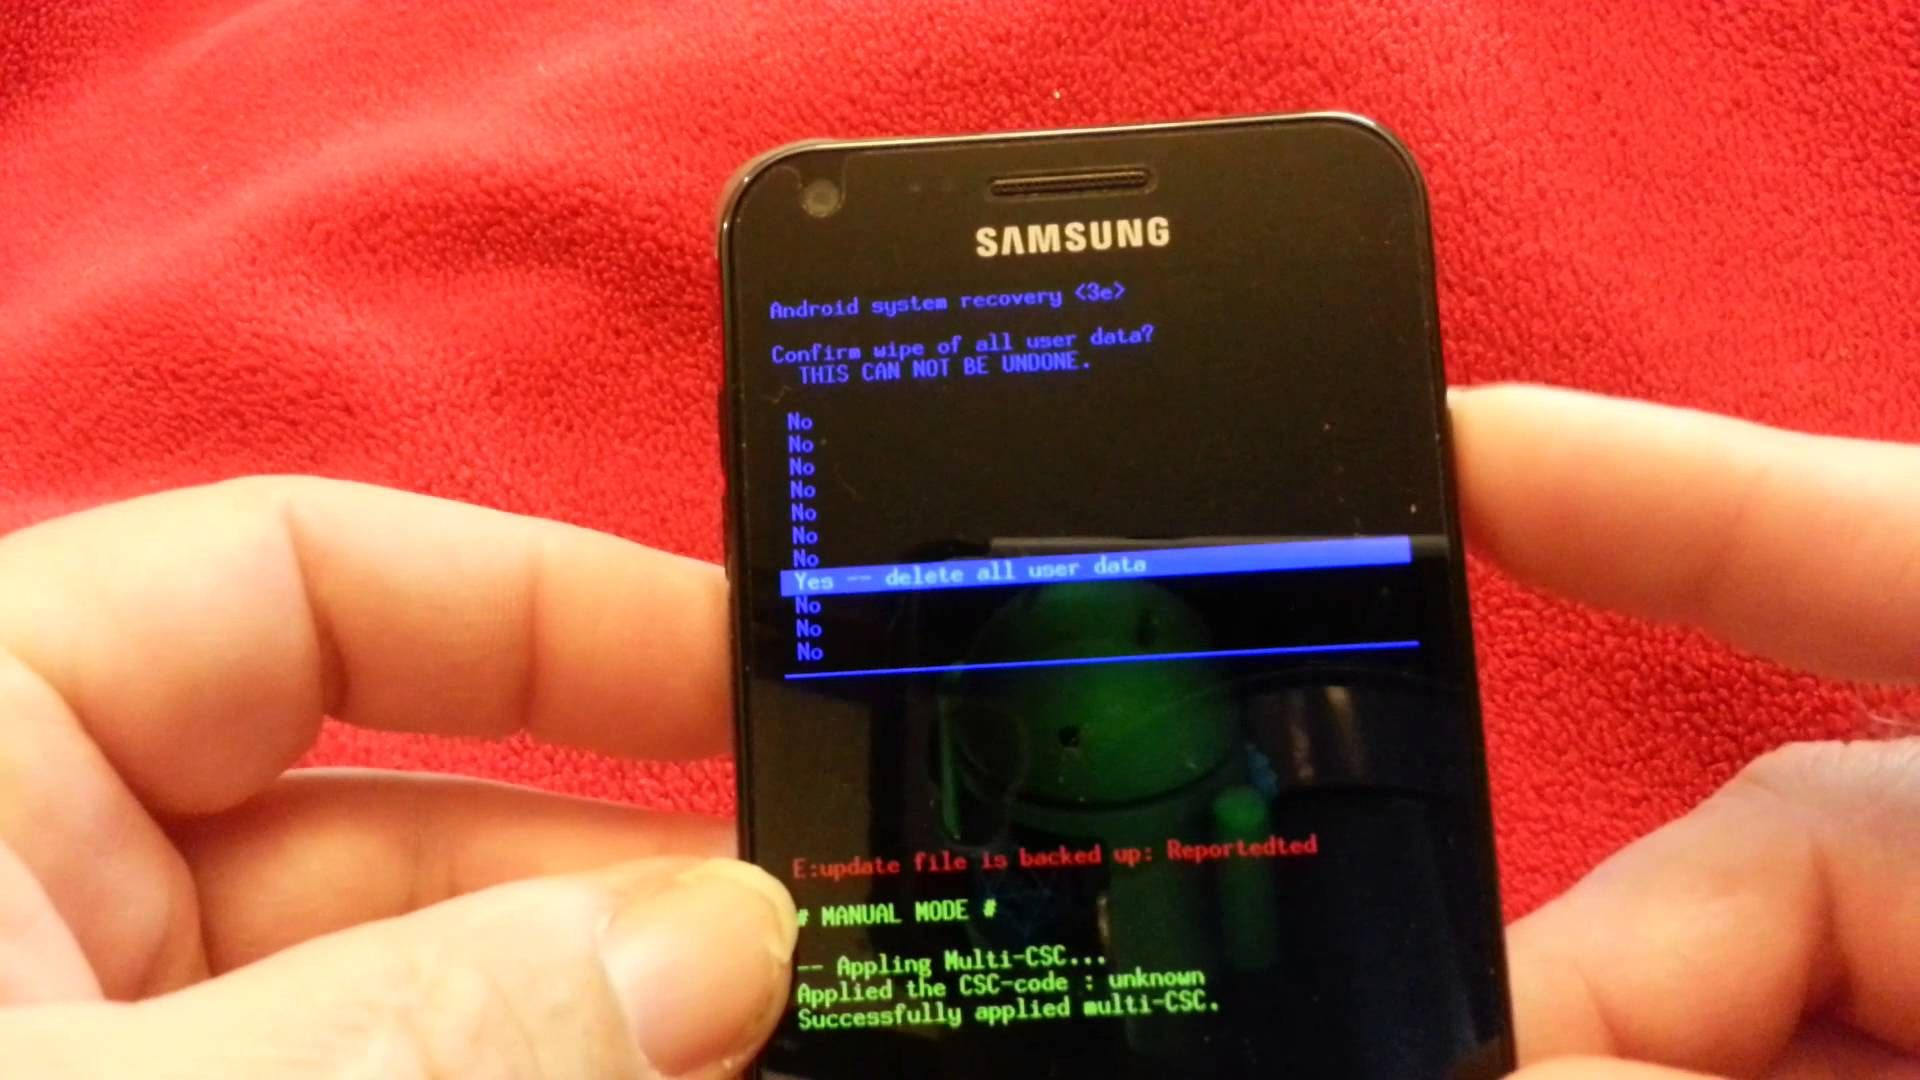 SAMSUNG GALAXY S2 FACTORY RESET This really works, I did it. It saved my phone.